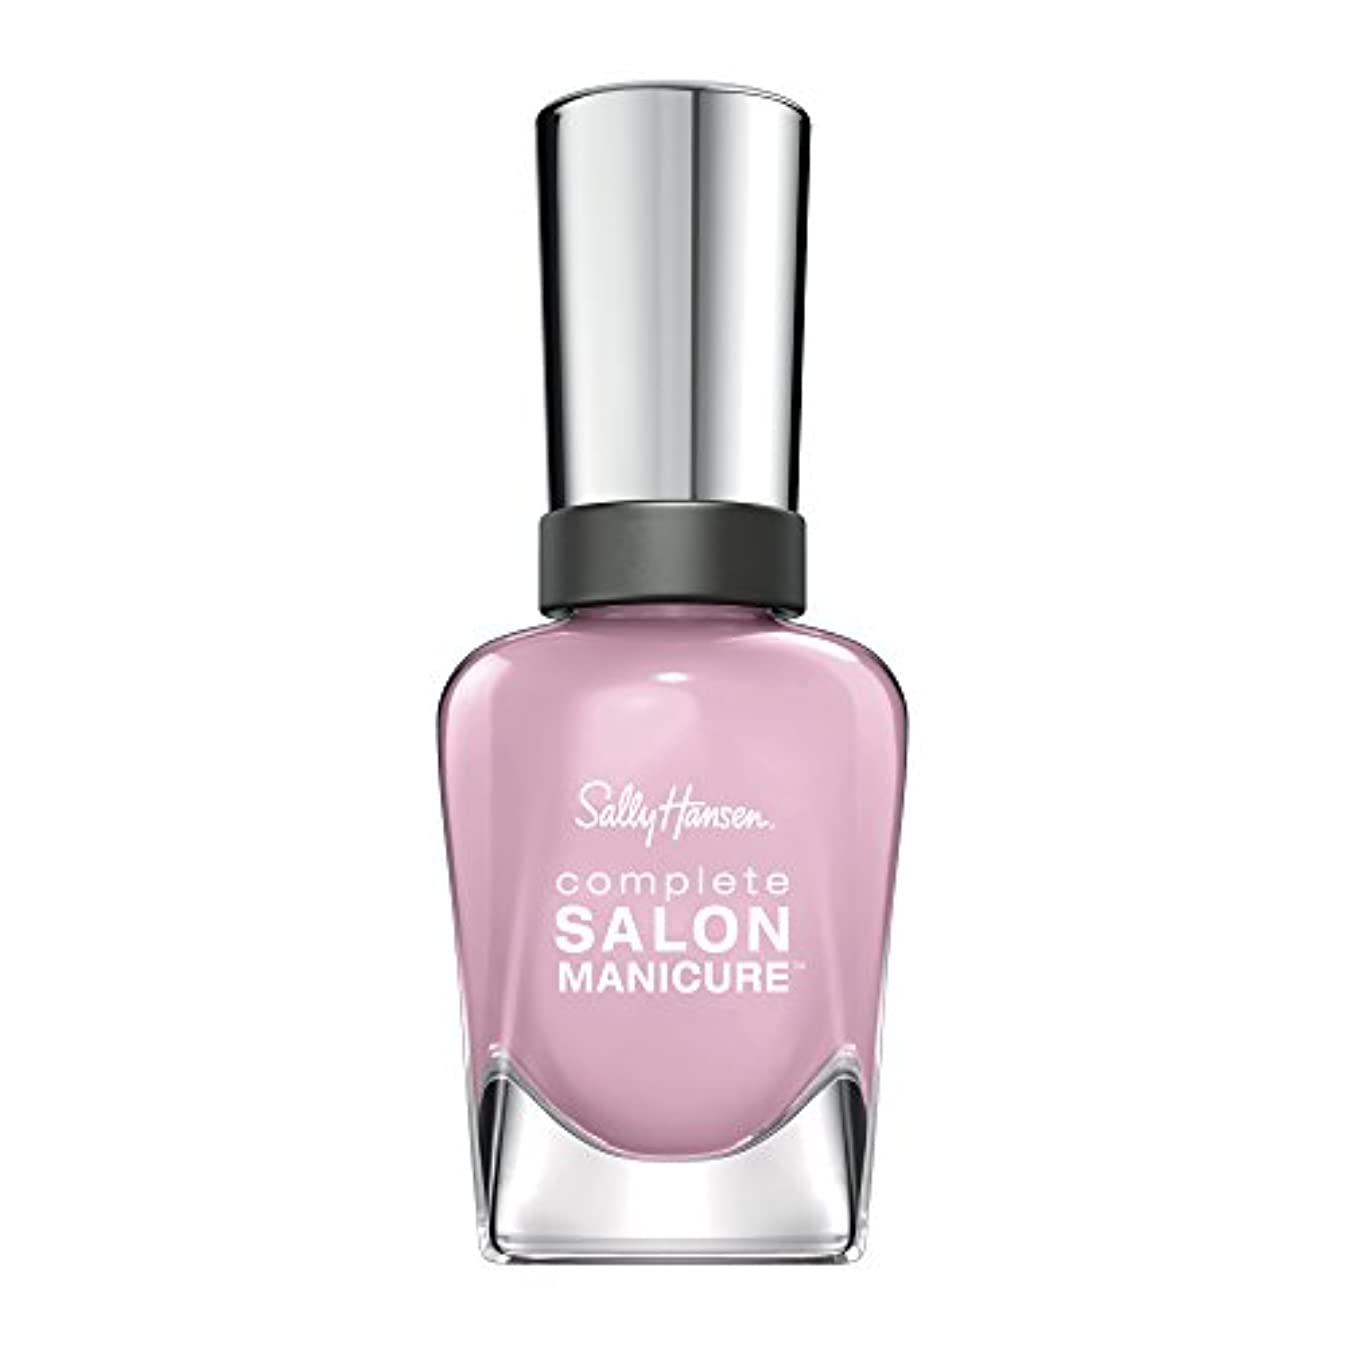 SALLY HANSEN COMPLETE SALON MANICURE NAIL COLOR #350 PINK A CARD